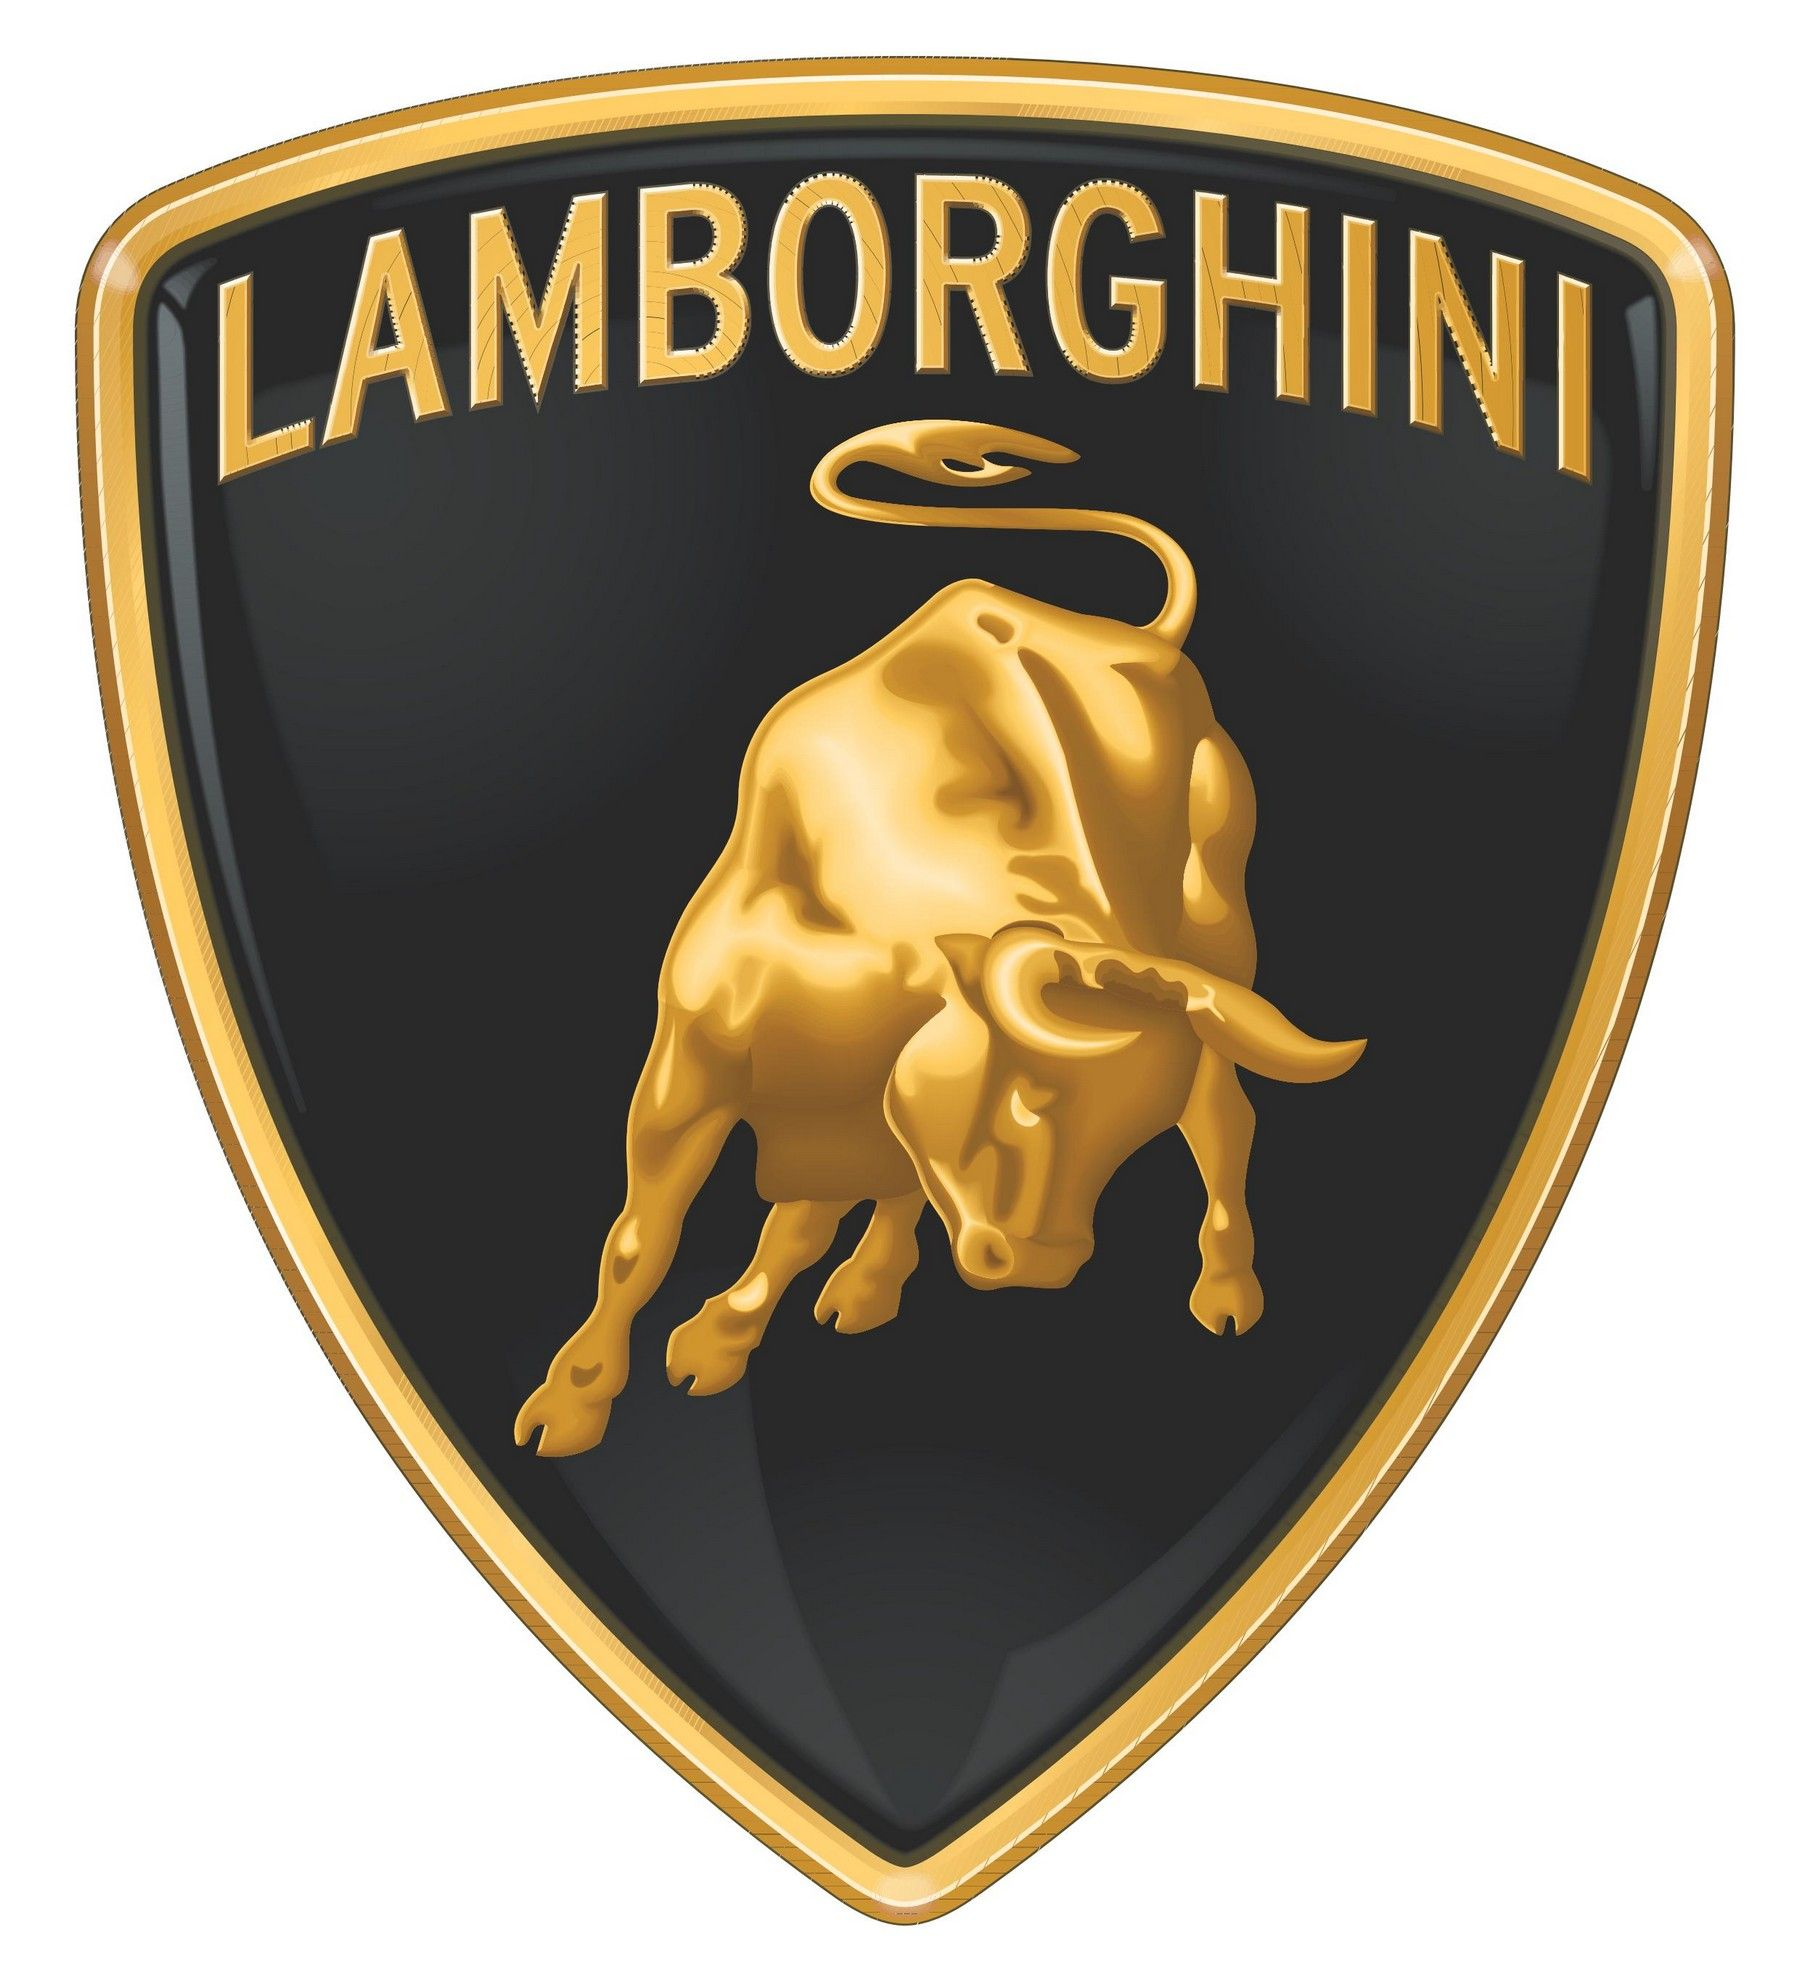 Lamborghini Logo Eps Pdf Car And Motorcycle Logos Pinterest